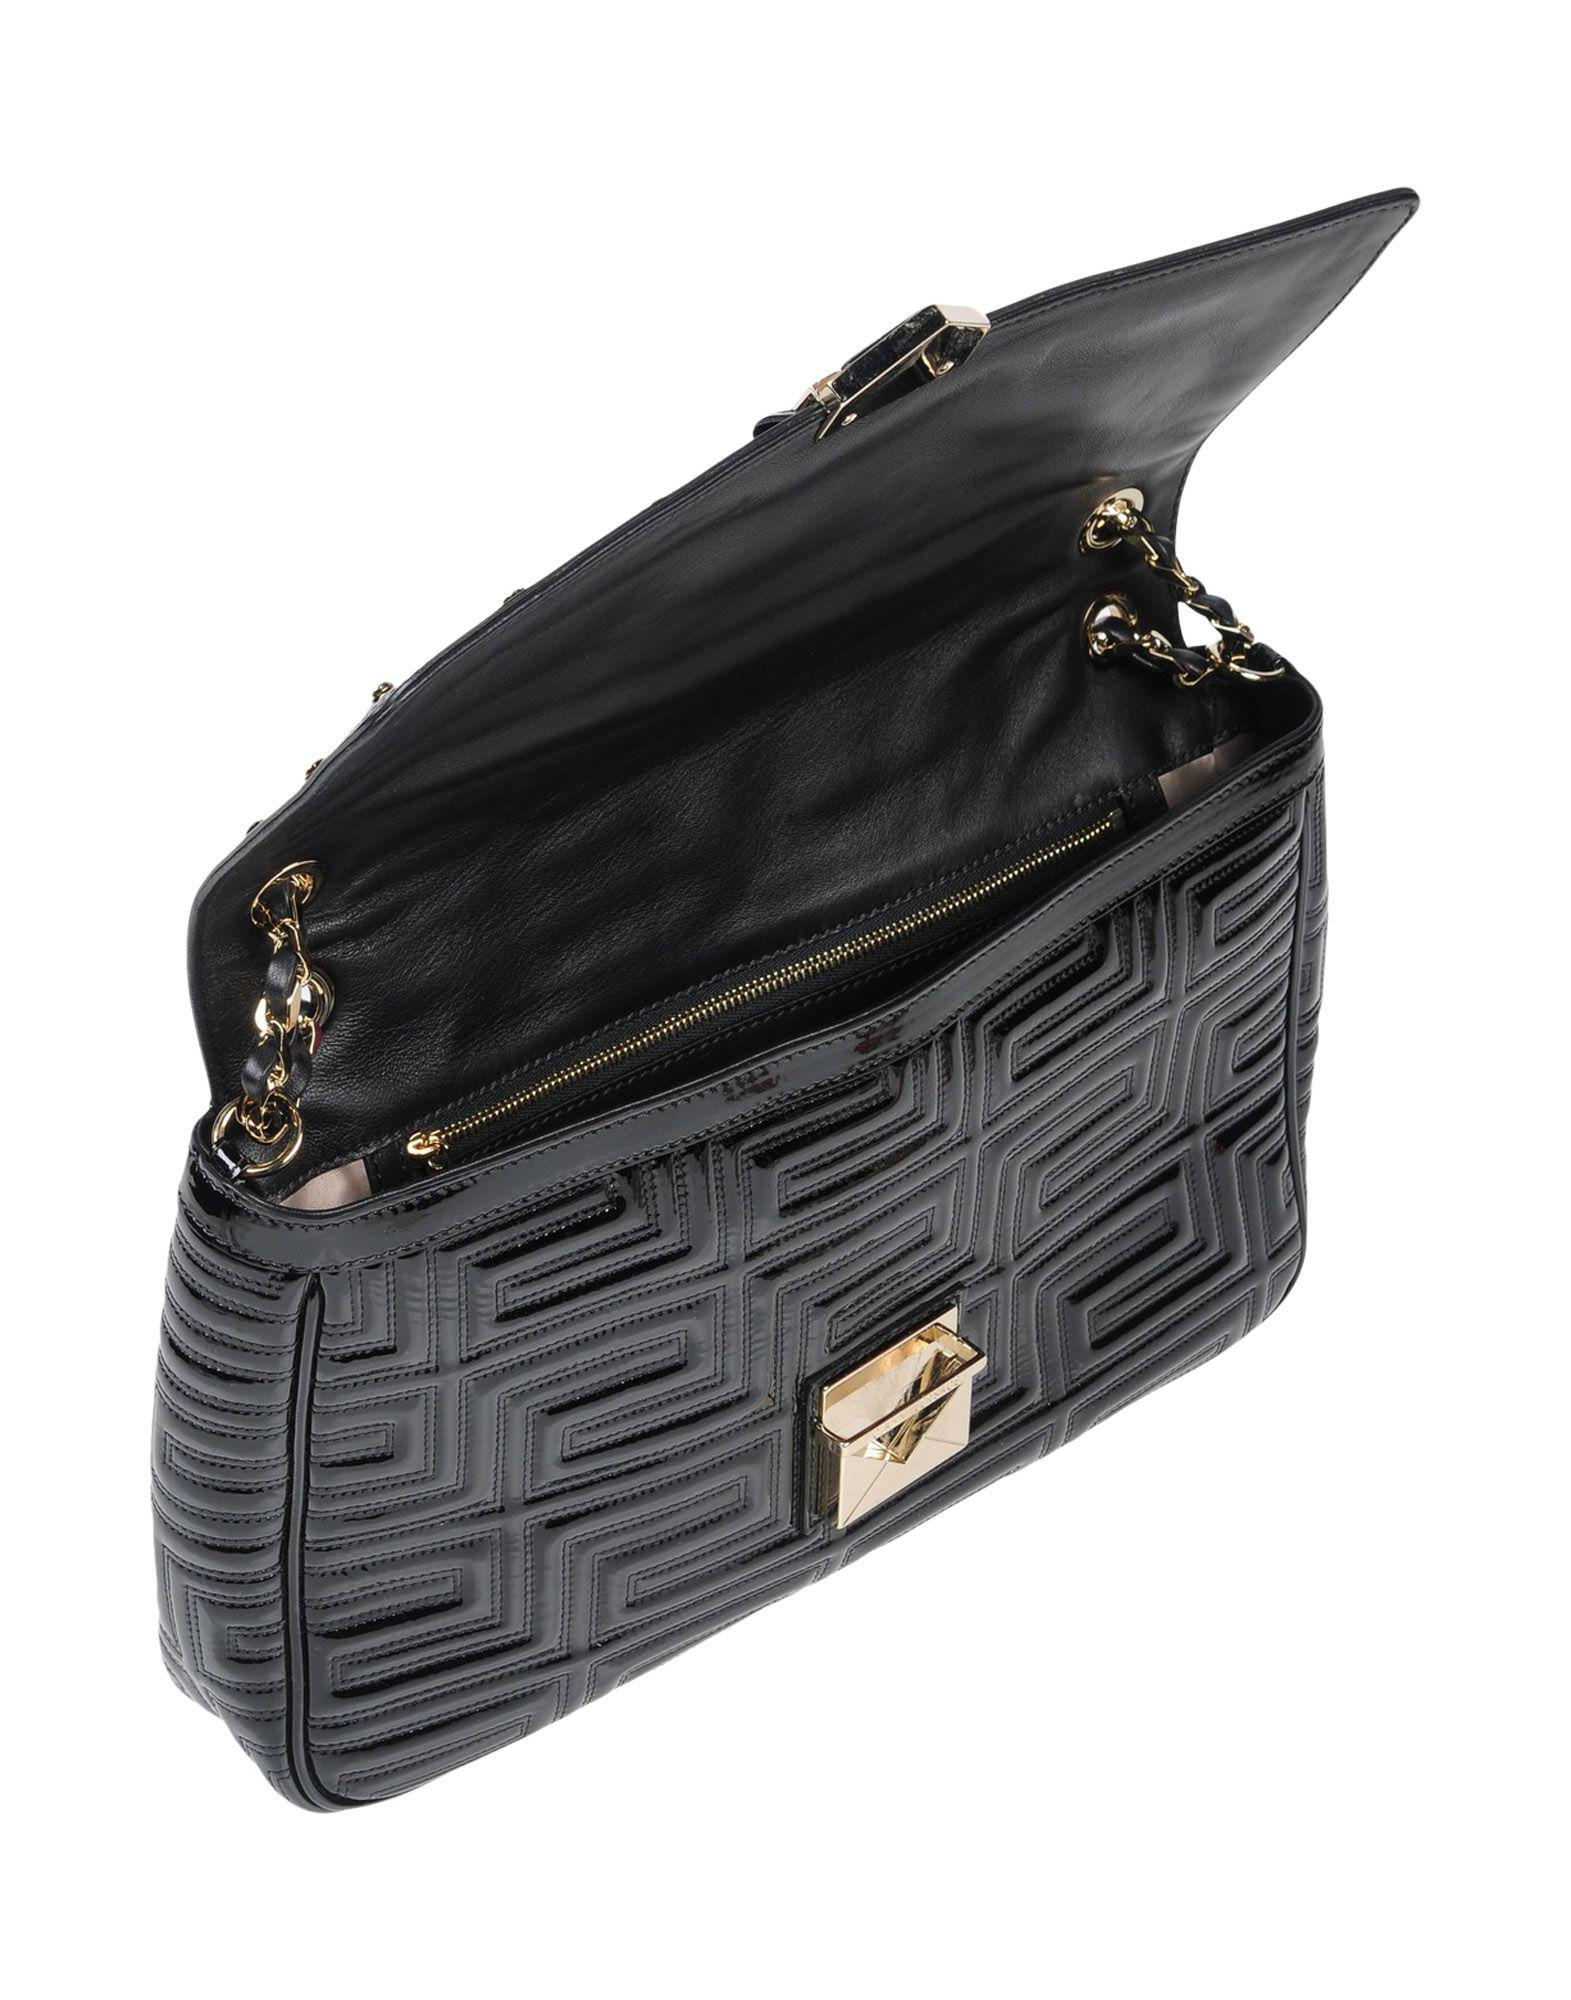 Lyst - Gianni Versace Couture Shoulder Bag in Black bf0fc5cbaca77